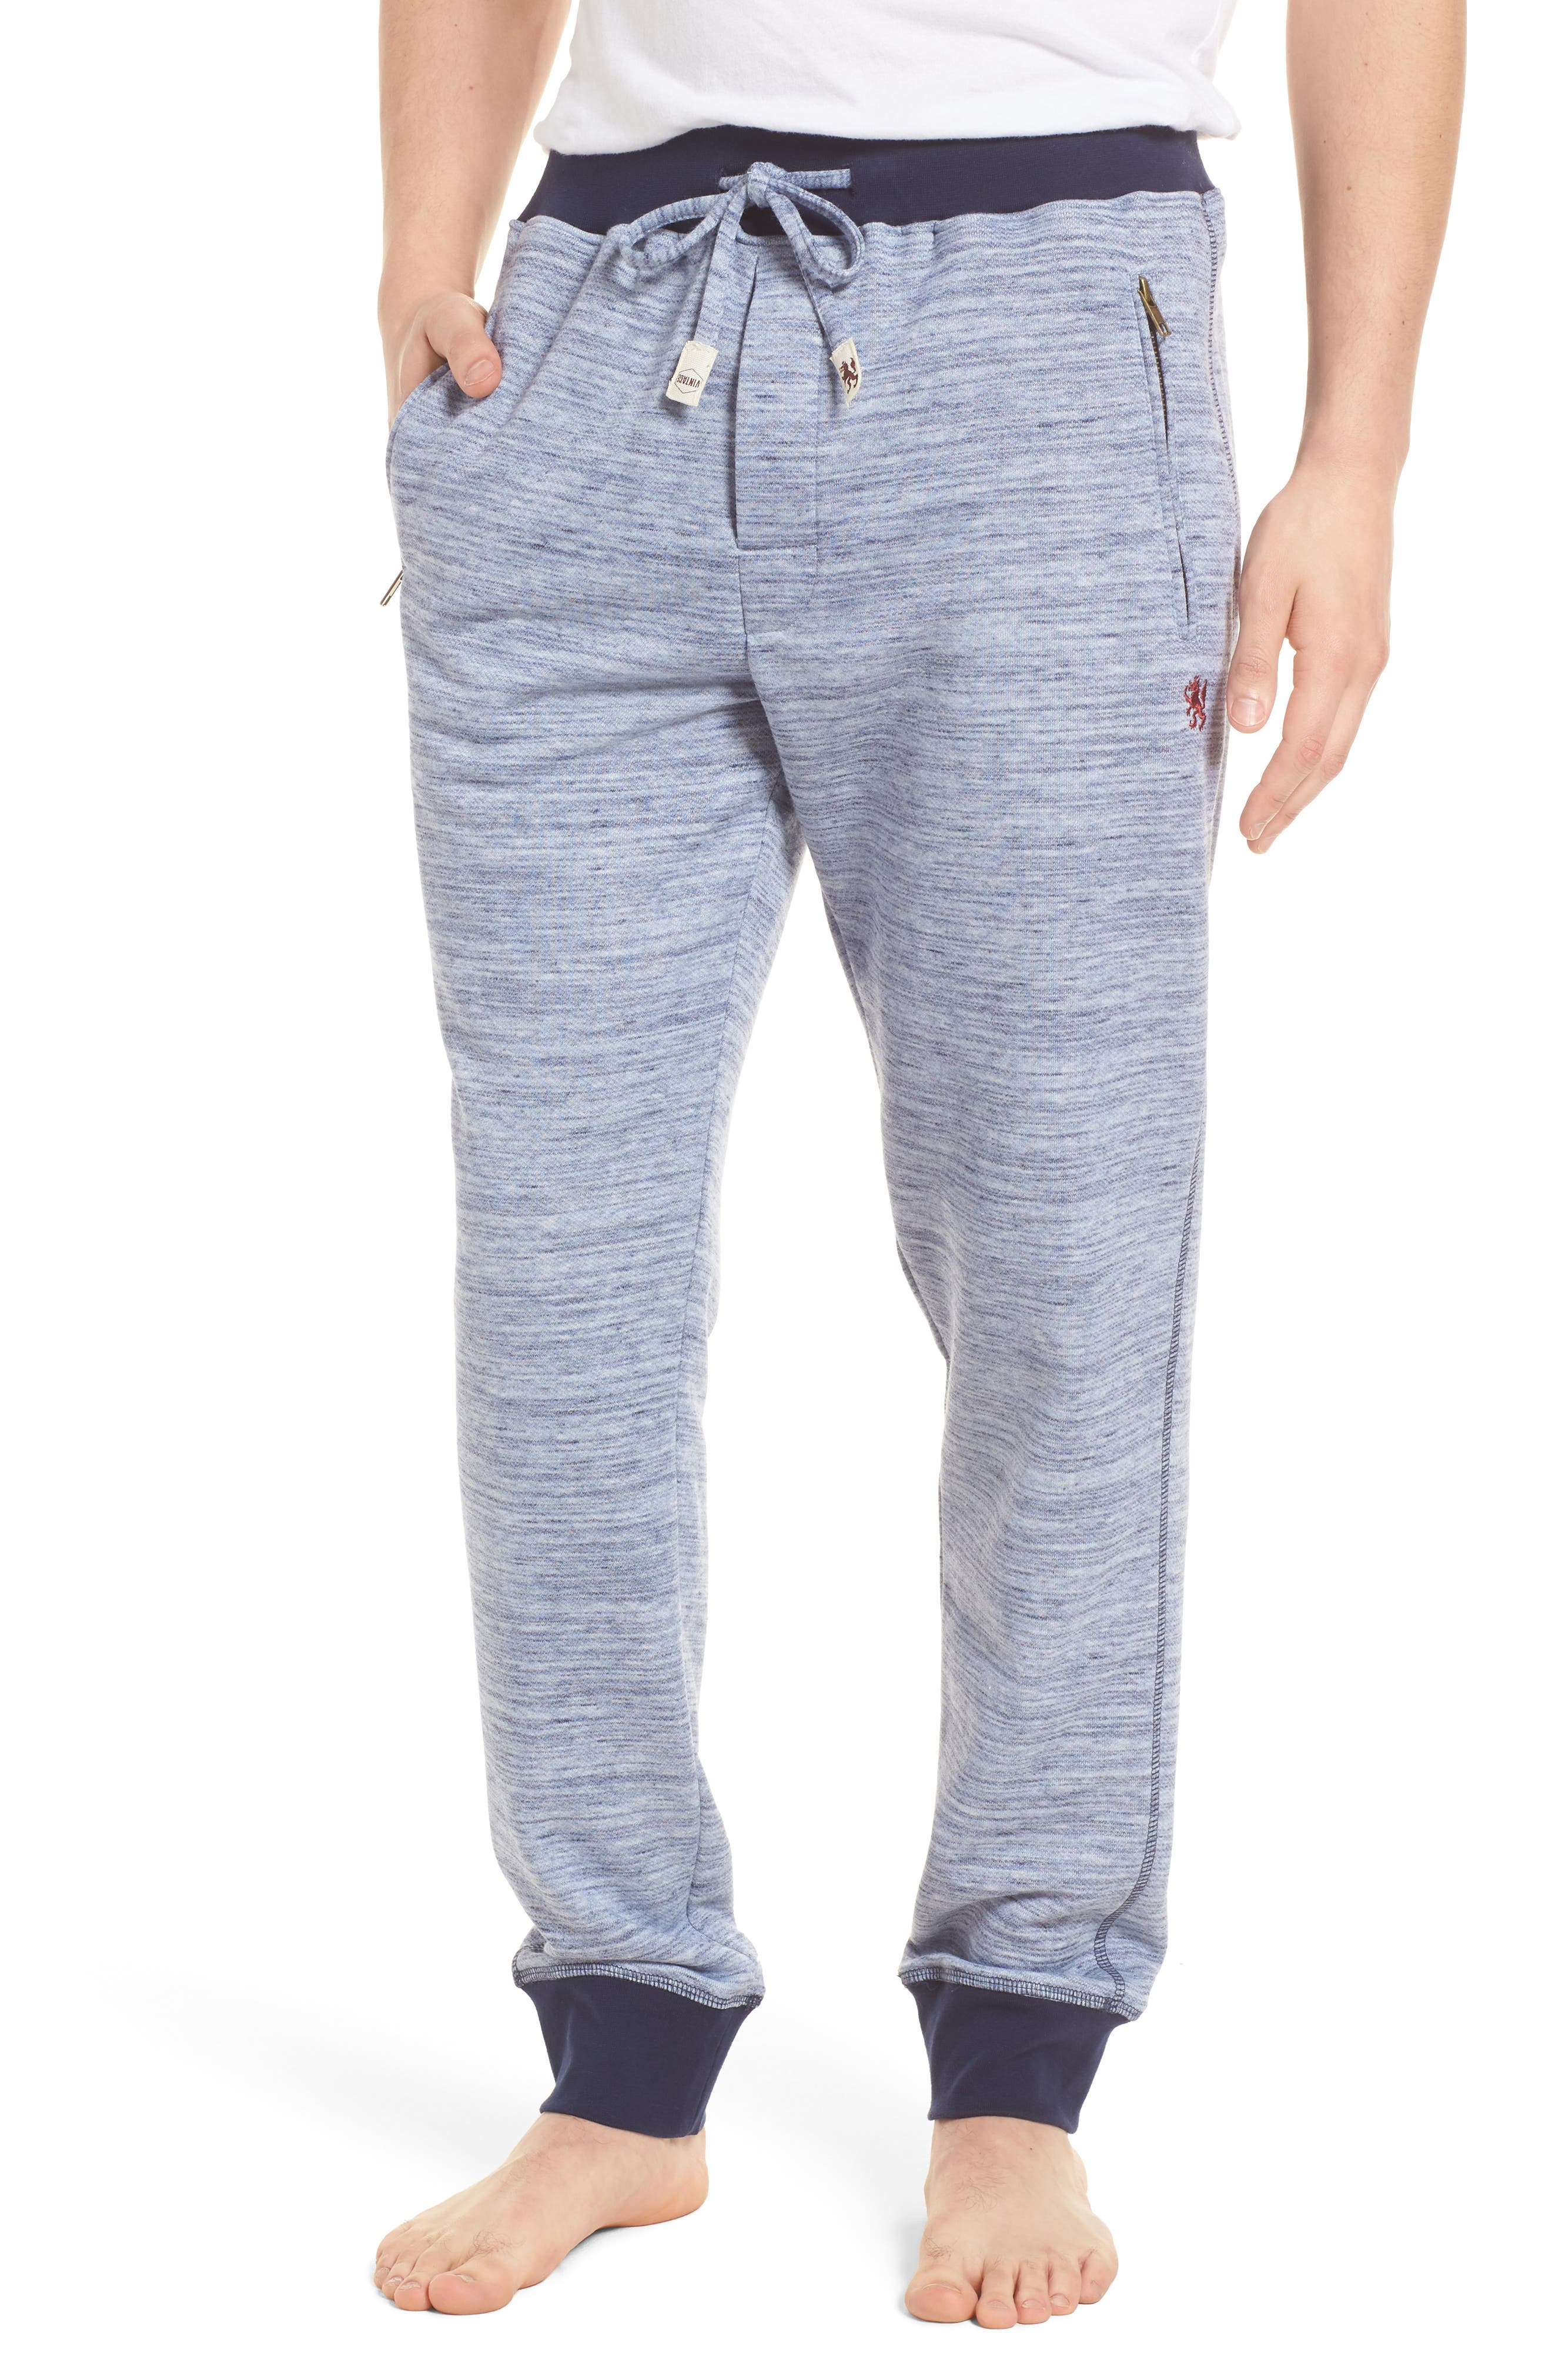 Swept In Waves Lounge Pants,                         Main,                         color, 400